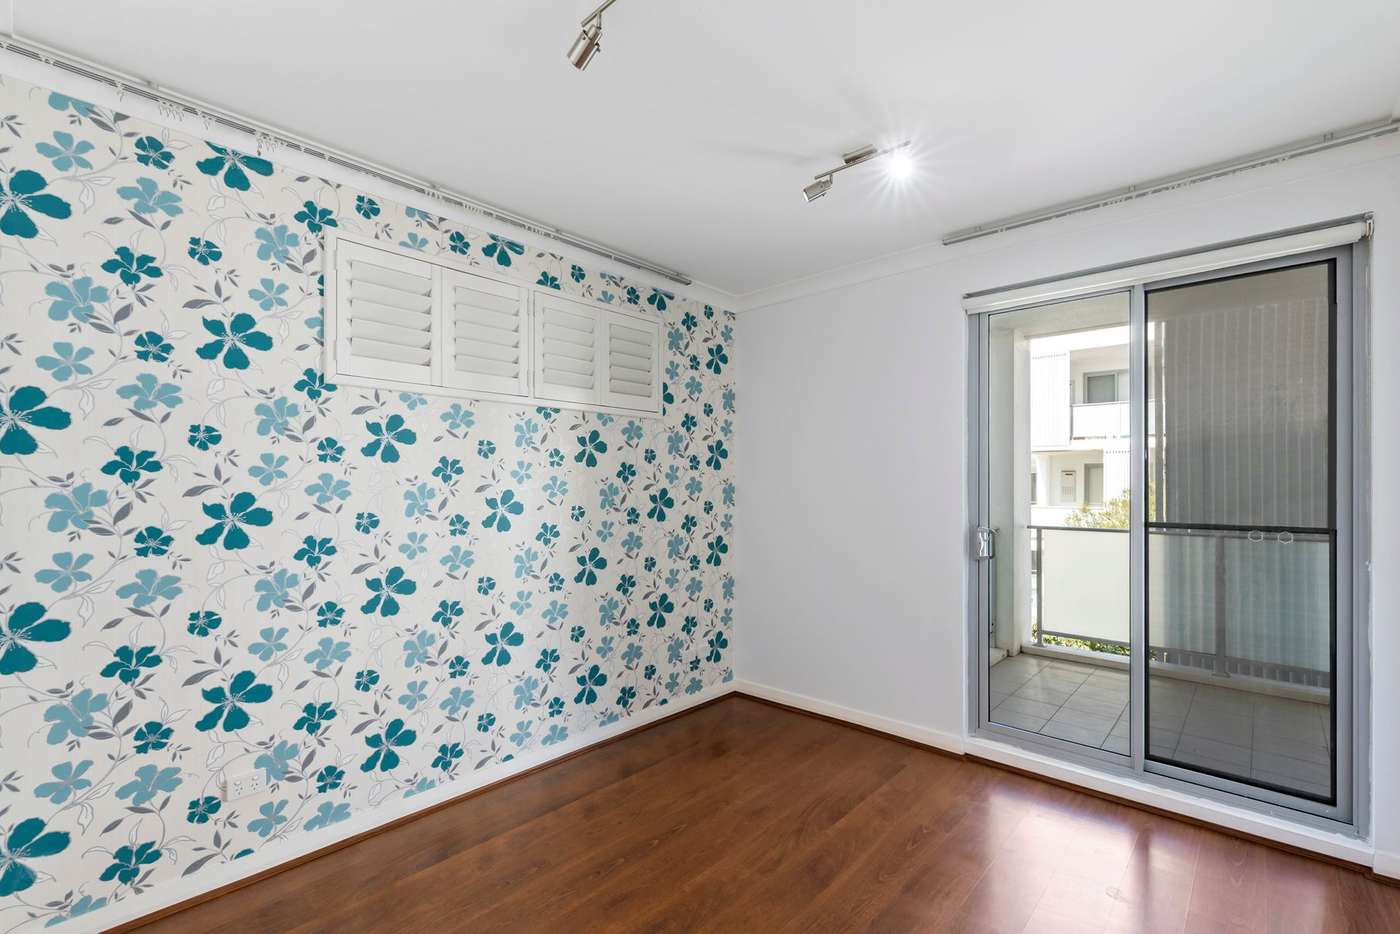 Fifth view of Homely apartment listing, 72/212-216 Mona Vale Road, St Ives NSW 2075